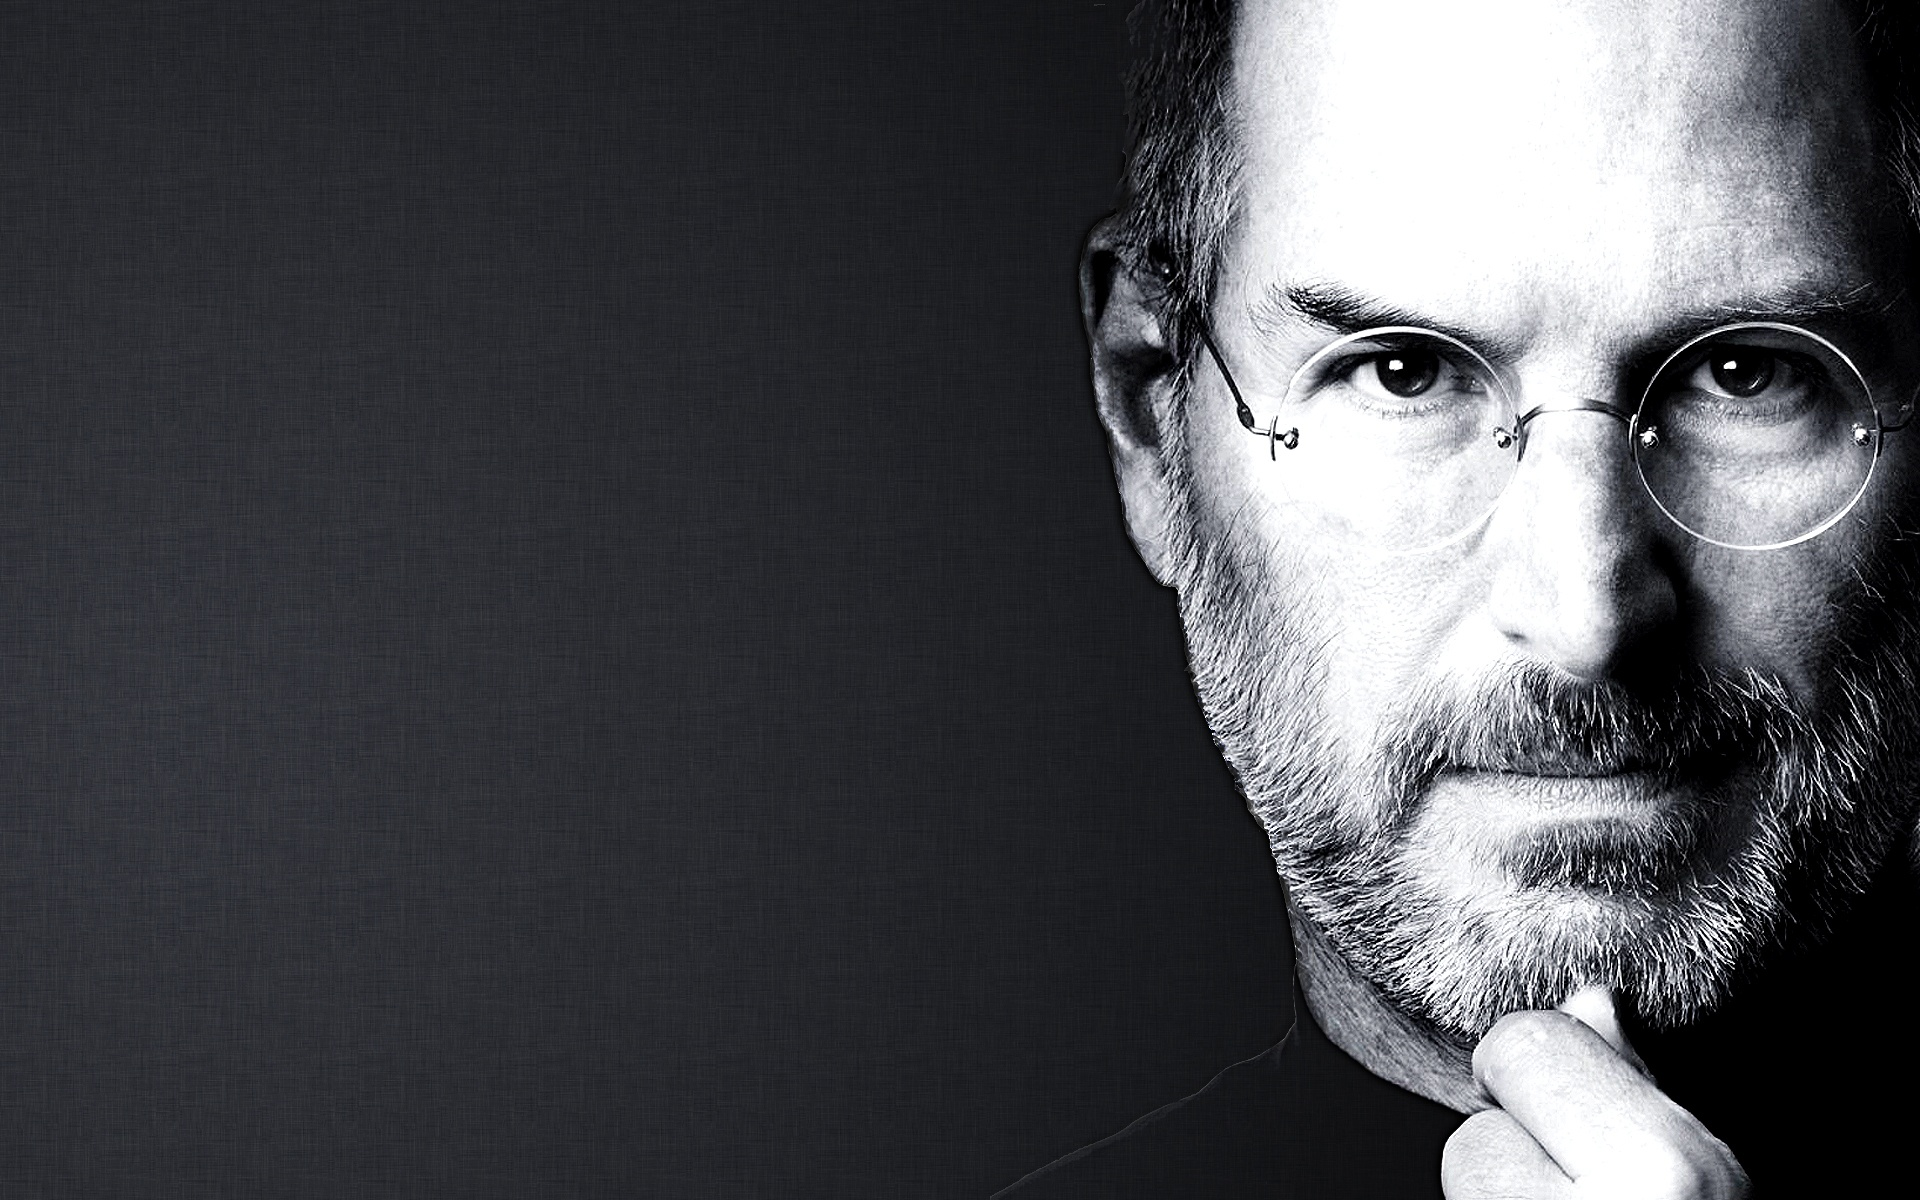 Steve Jobs' legacy includes the Women he inspired…